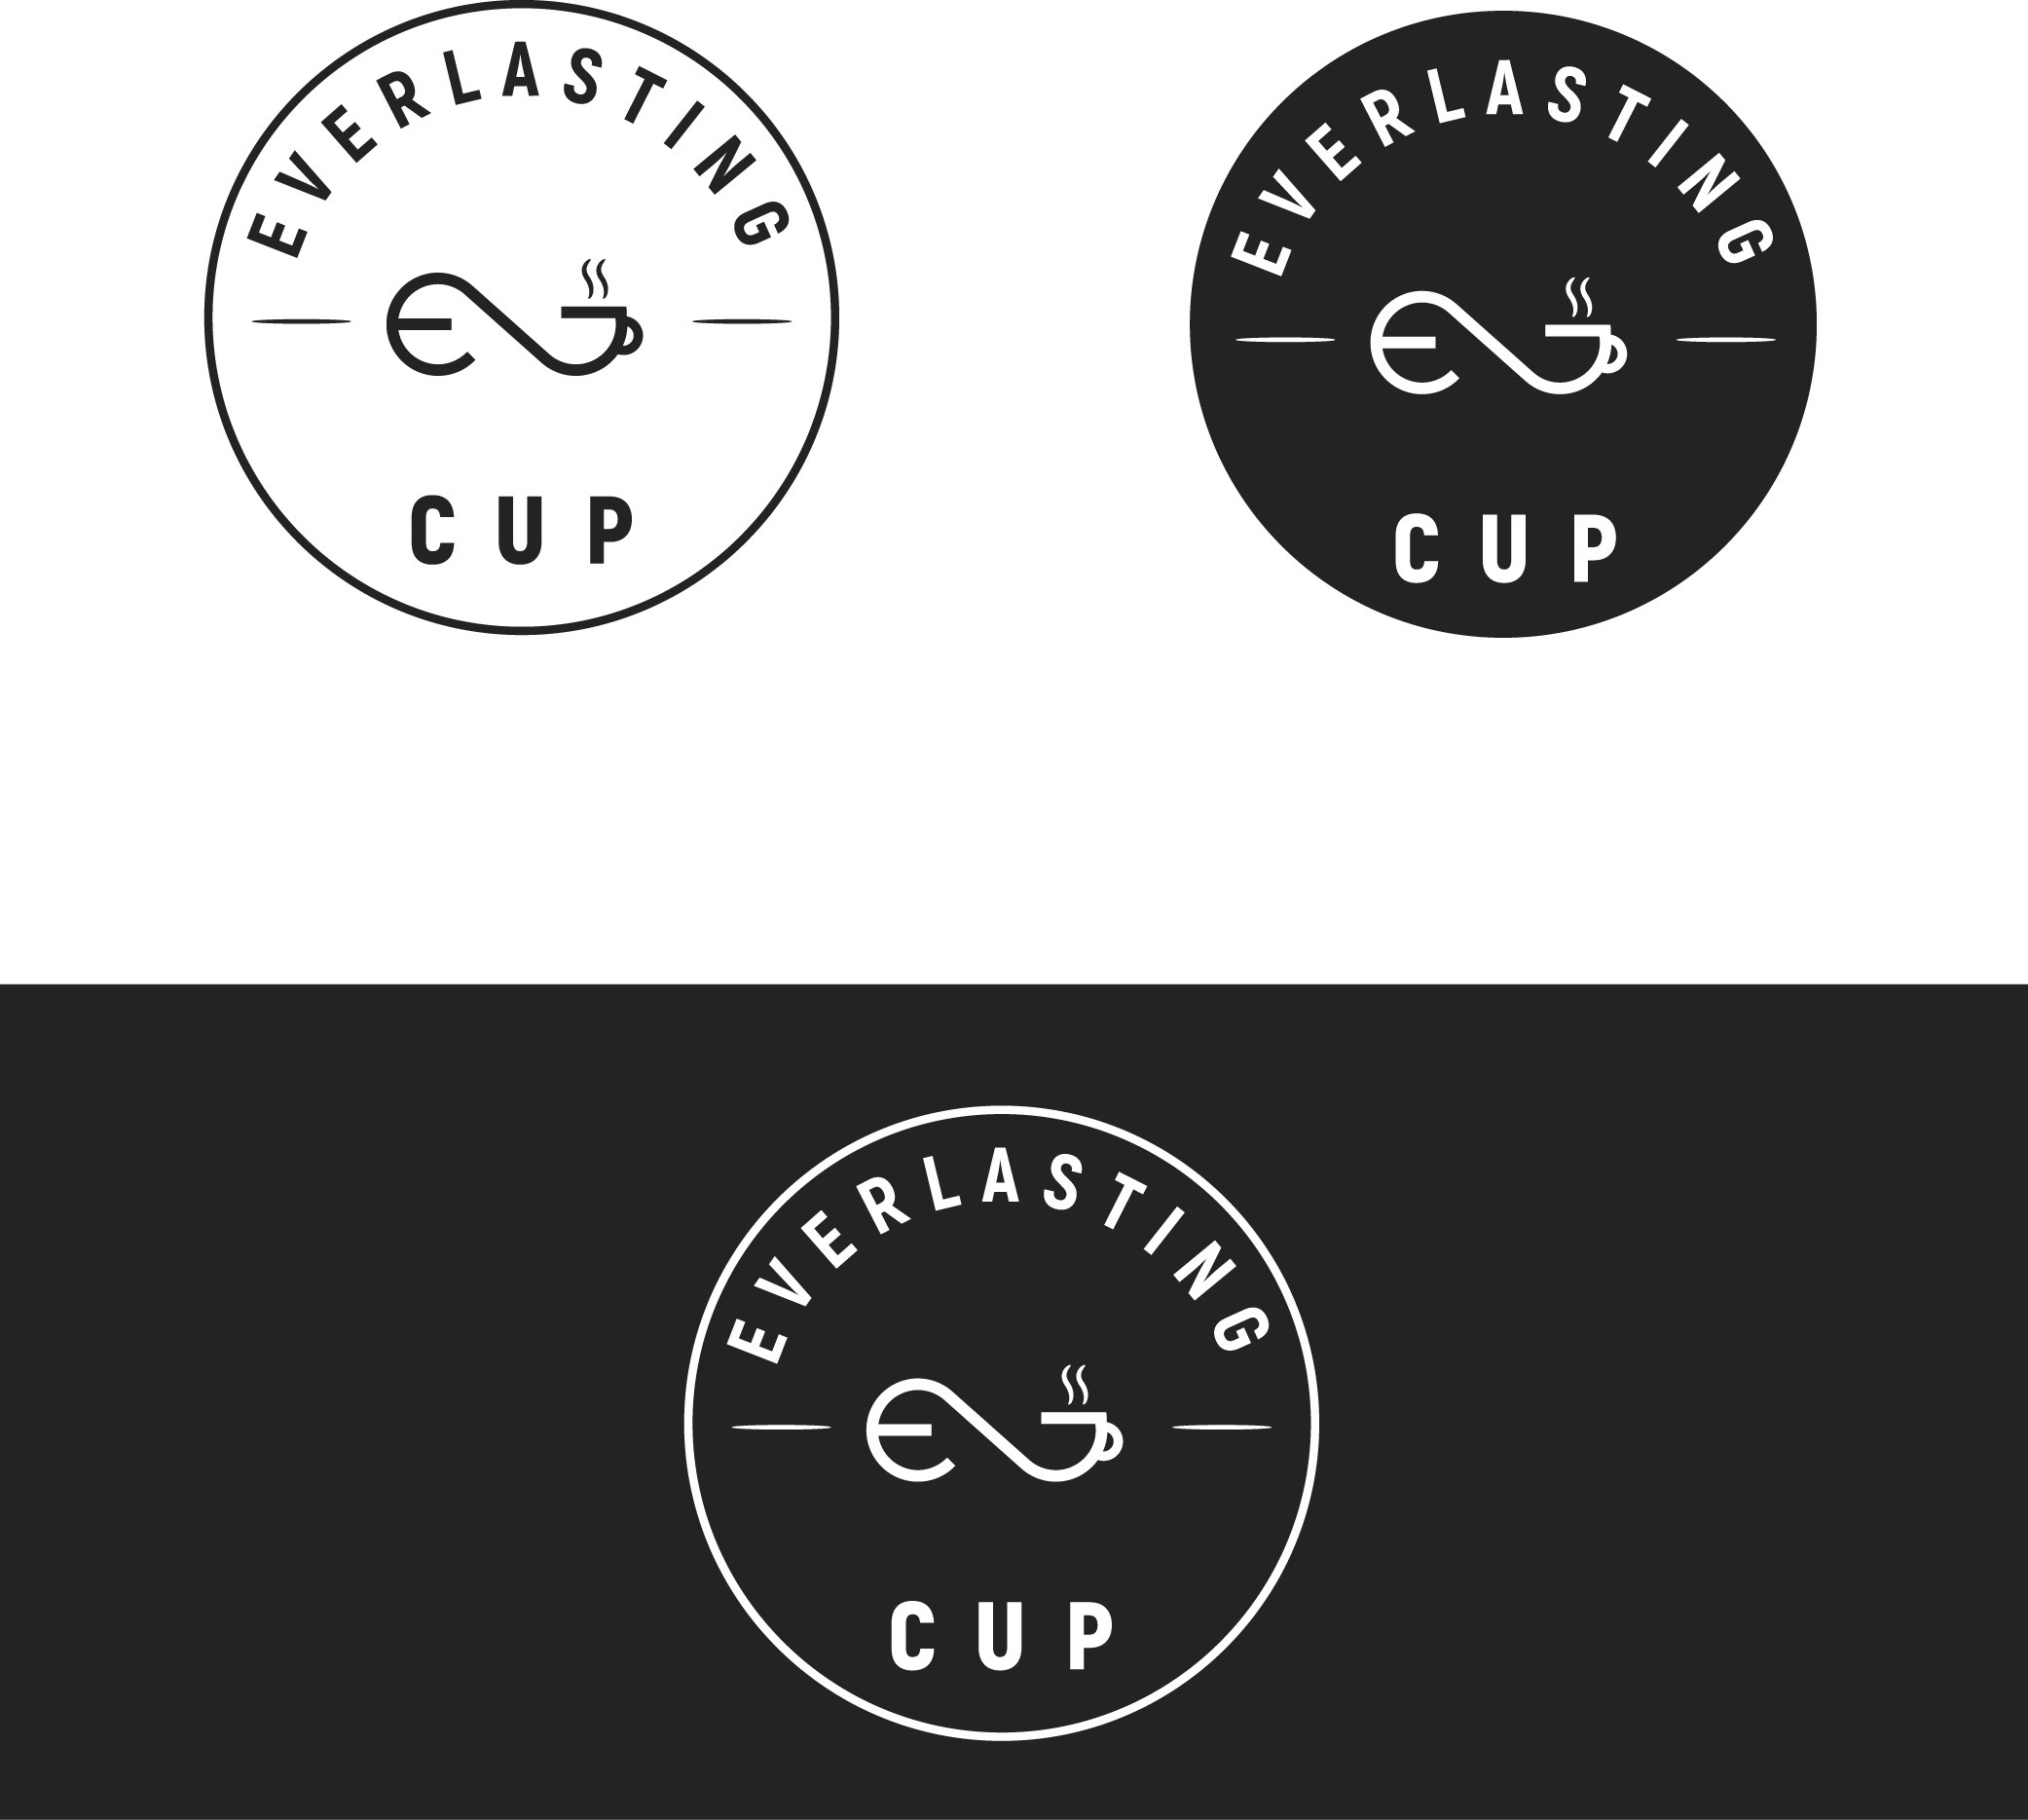 Everlasting Cup